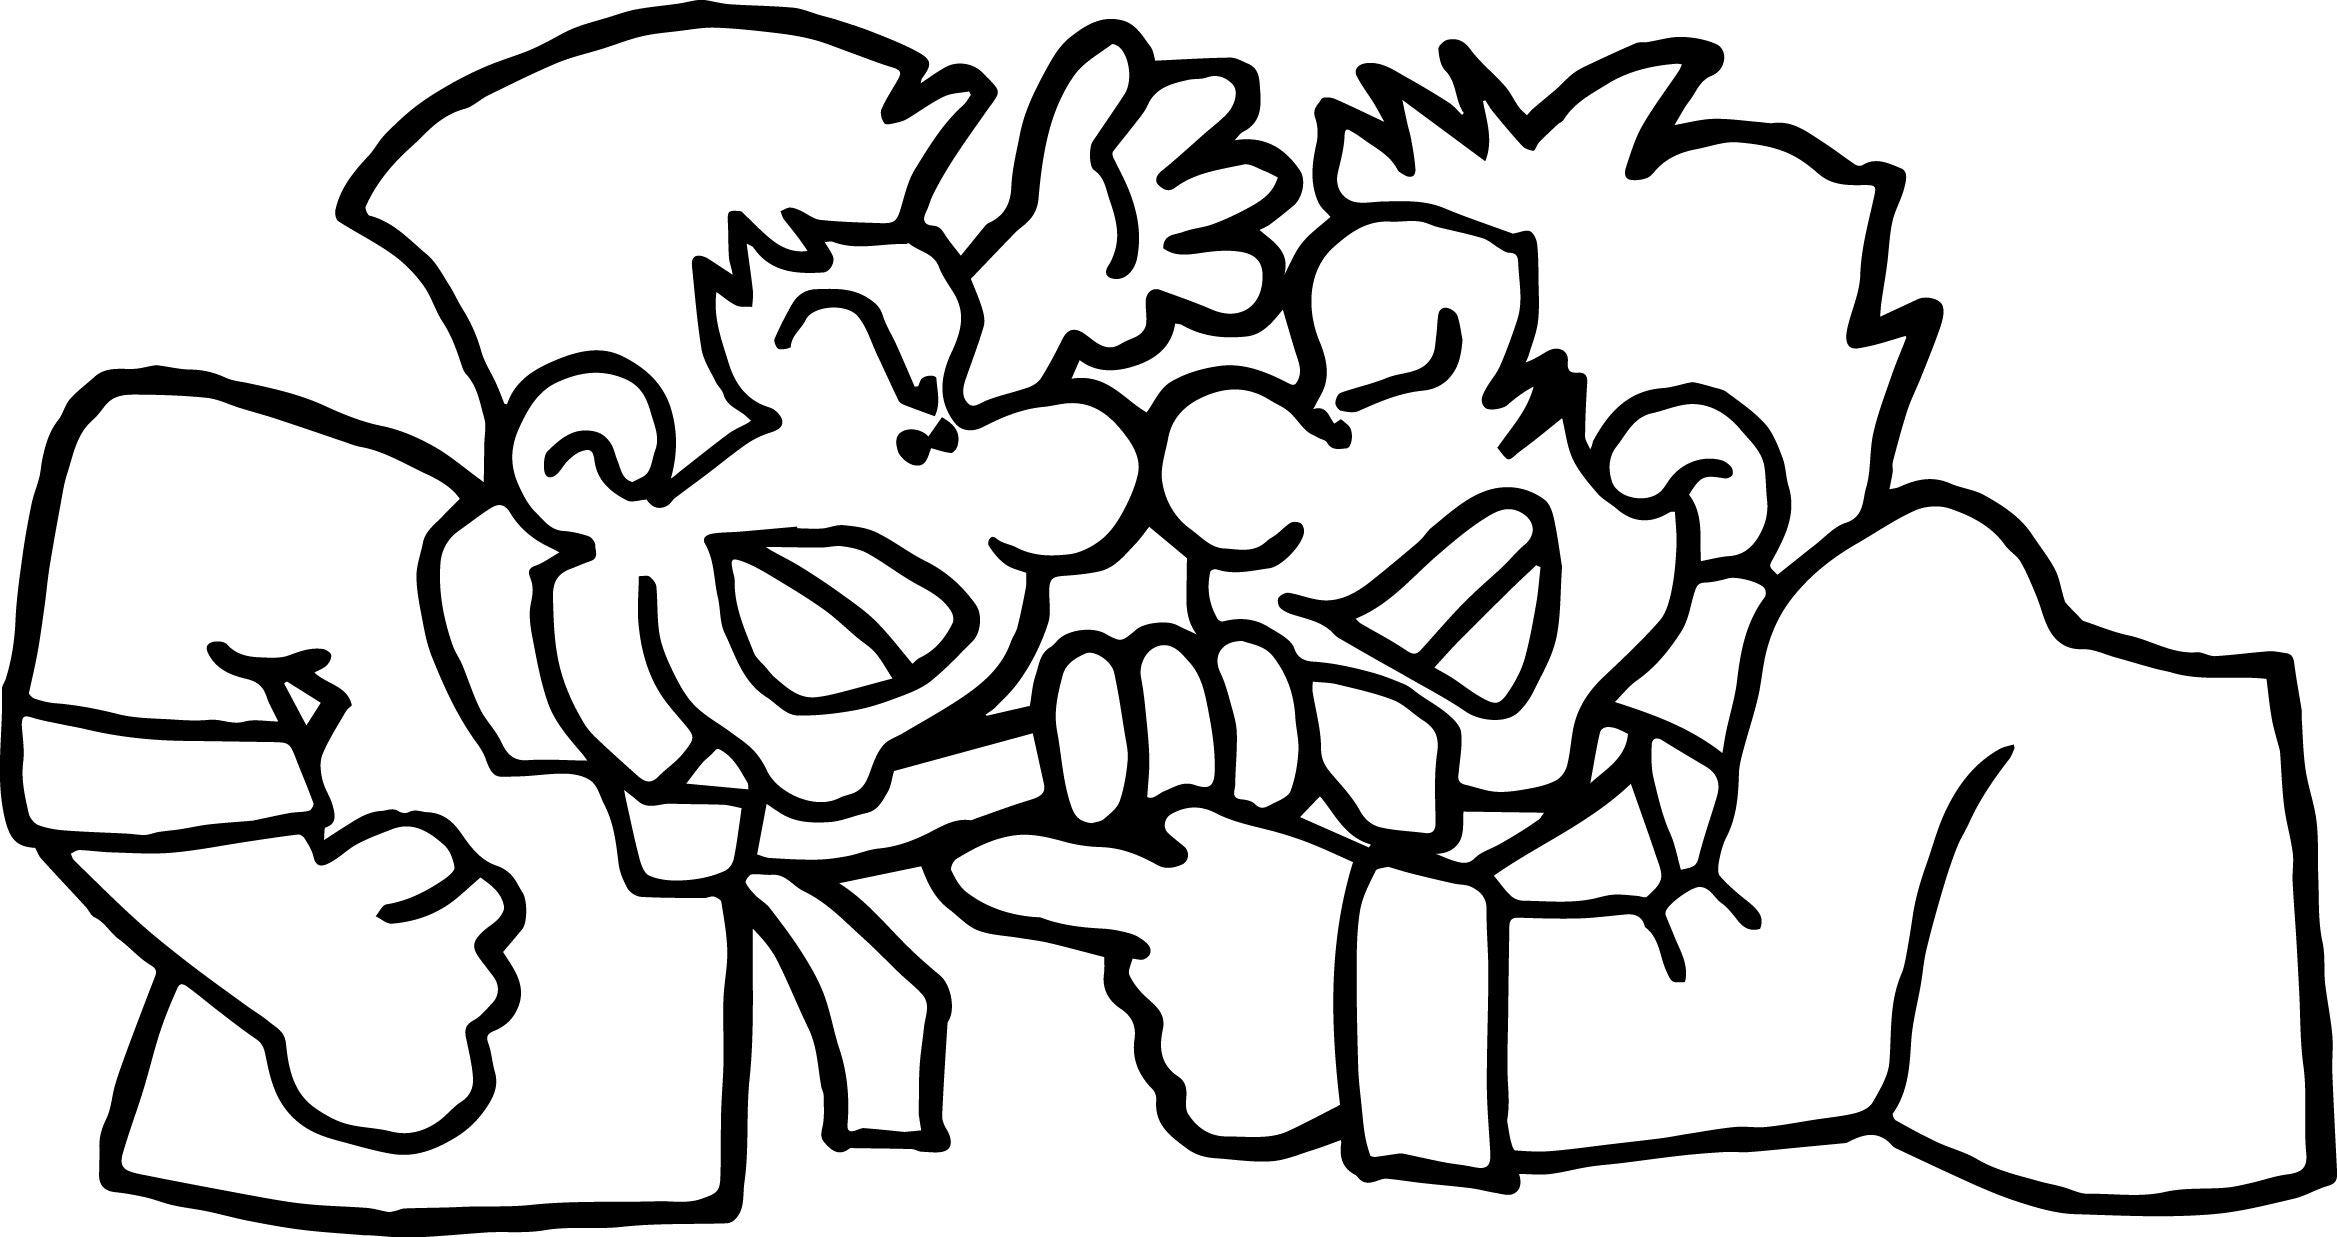 student conflict angry two people coloring page wecoloringpage